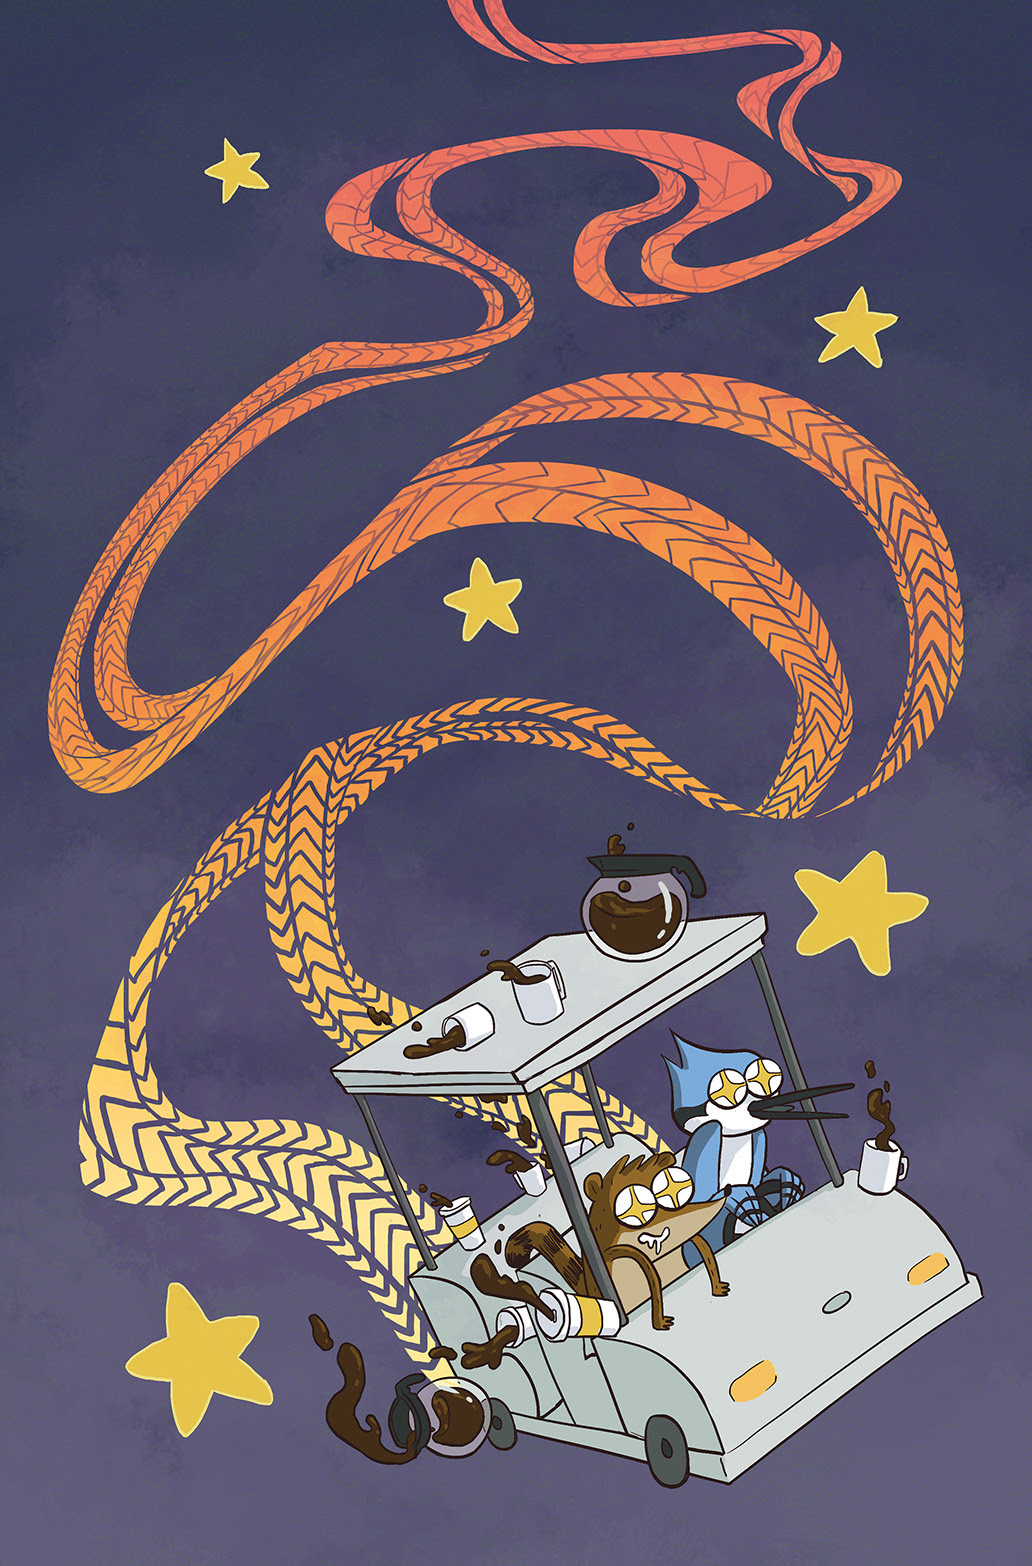 REGULAR SHOW #15 Cover B by Katie McDermott